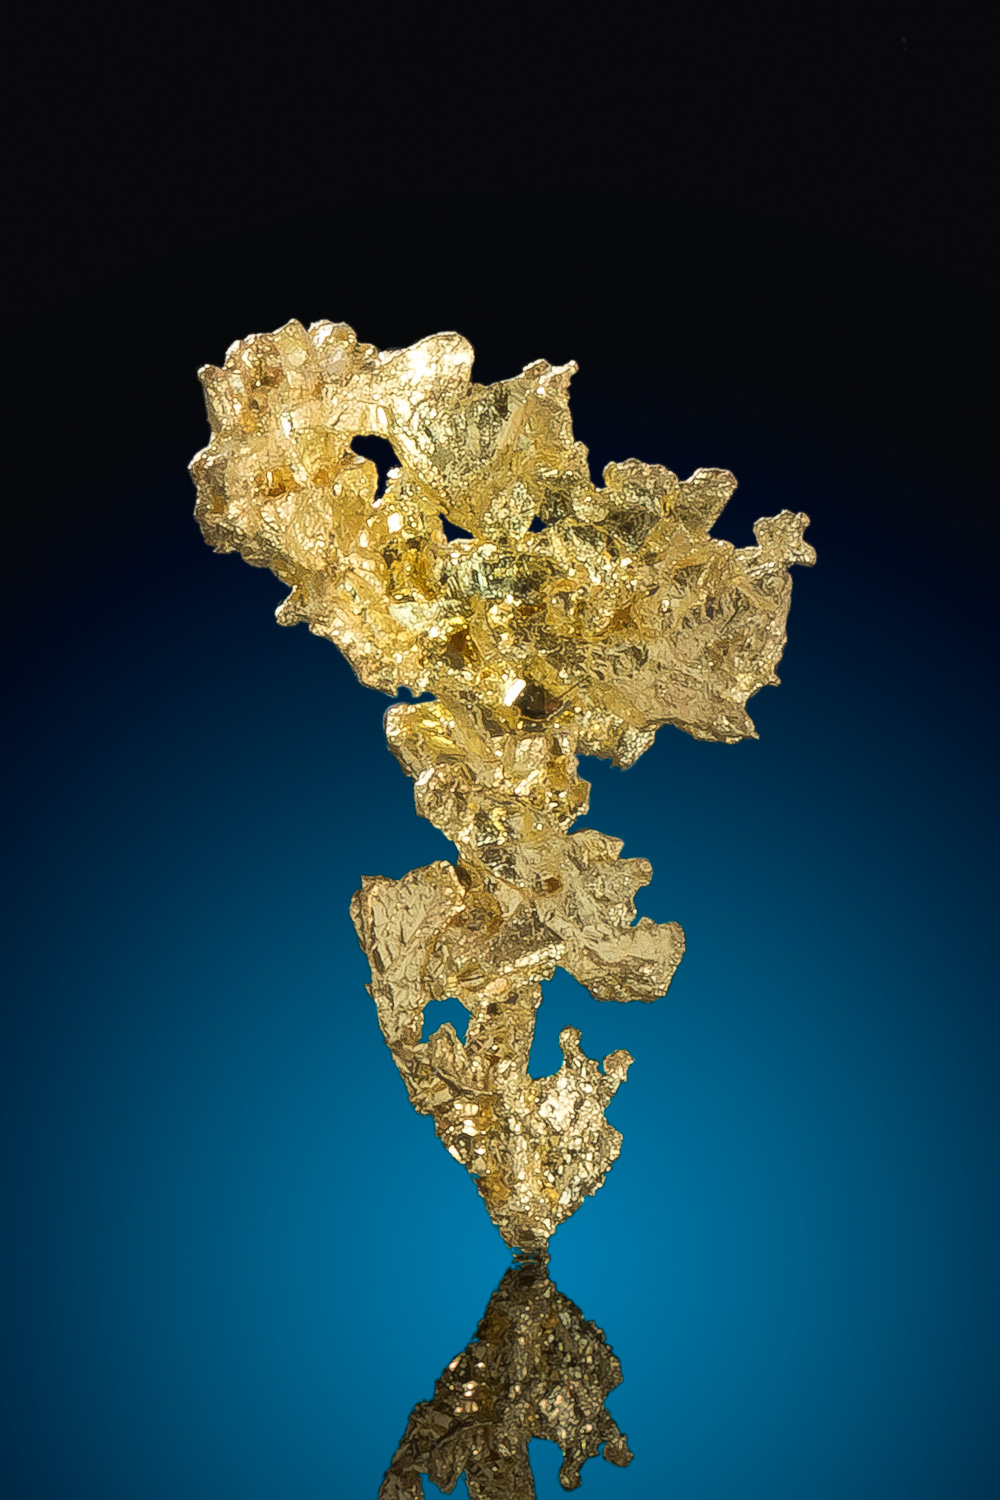 Lacy and Brilliant - Crystalline Gold from Eagles Nest